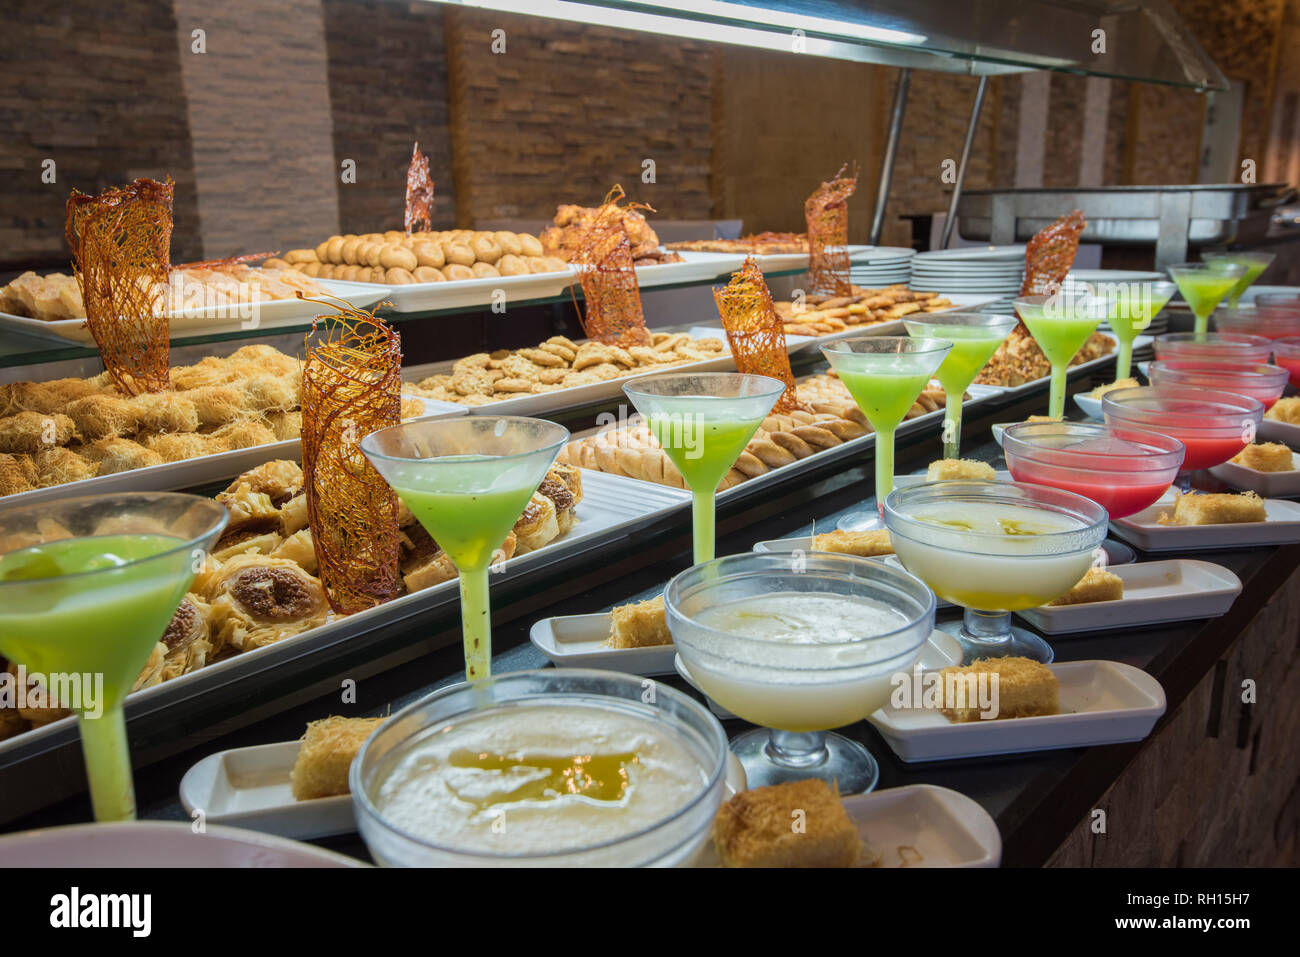 Selection Display Of Sweet Oriental Pastry Food And Desserts At A